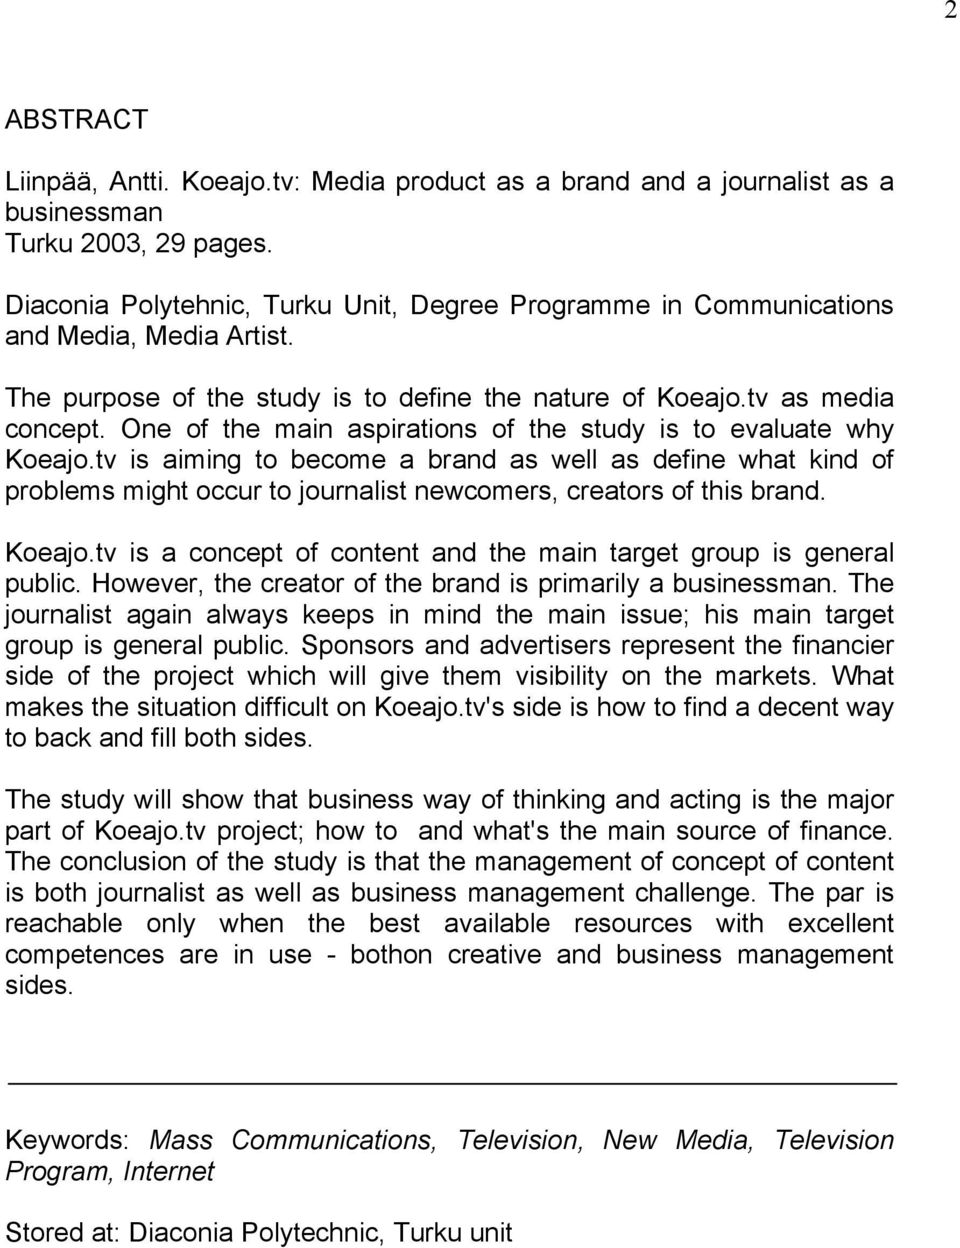 One of the main aspirations of the study is to evaluate why Koeajo.tv is aiming to become a brand as well as define what kind of problems might occur to journalist newcomers, creators of this brand.